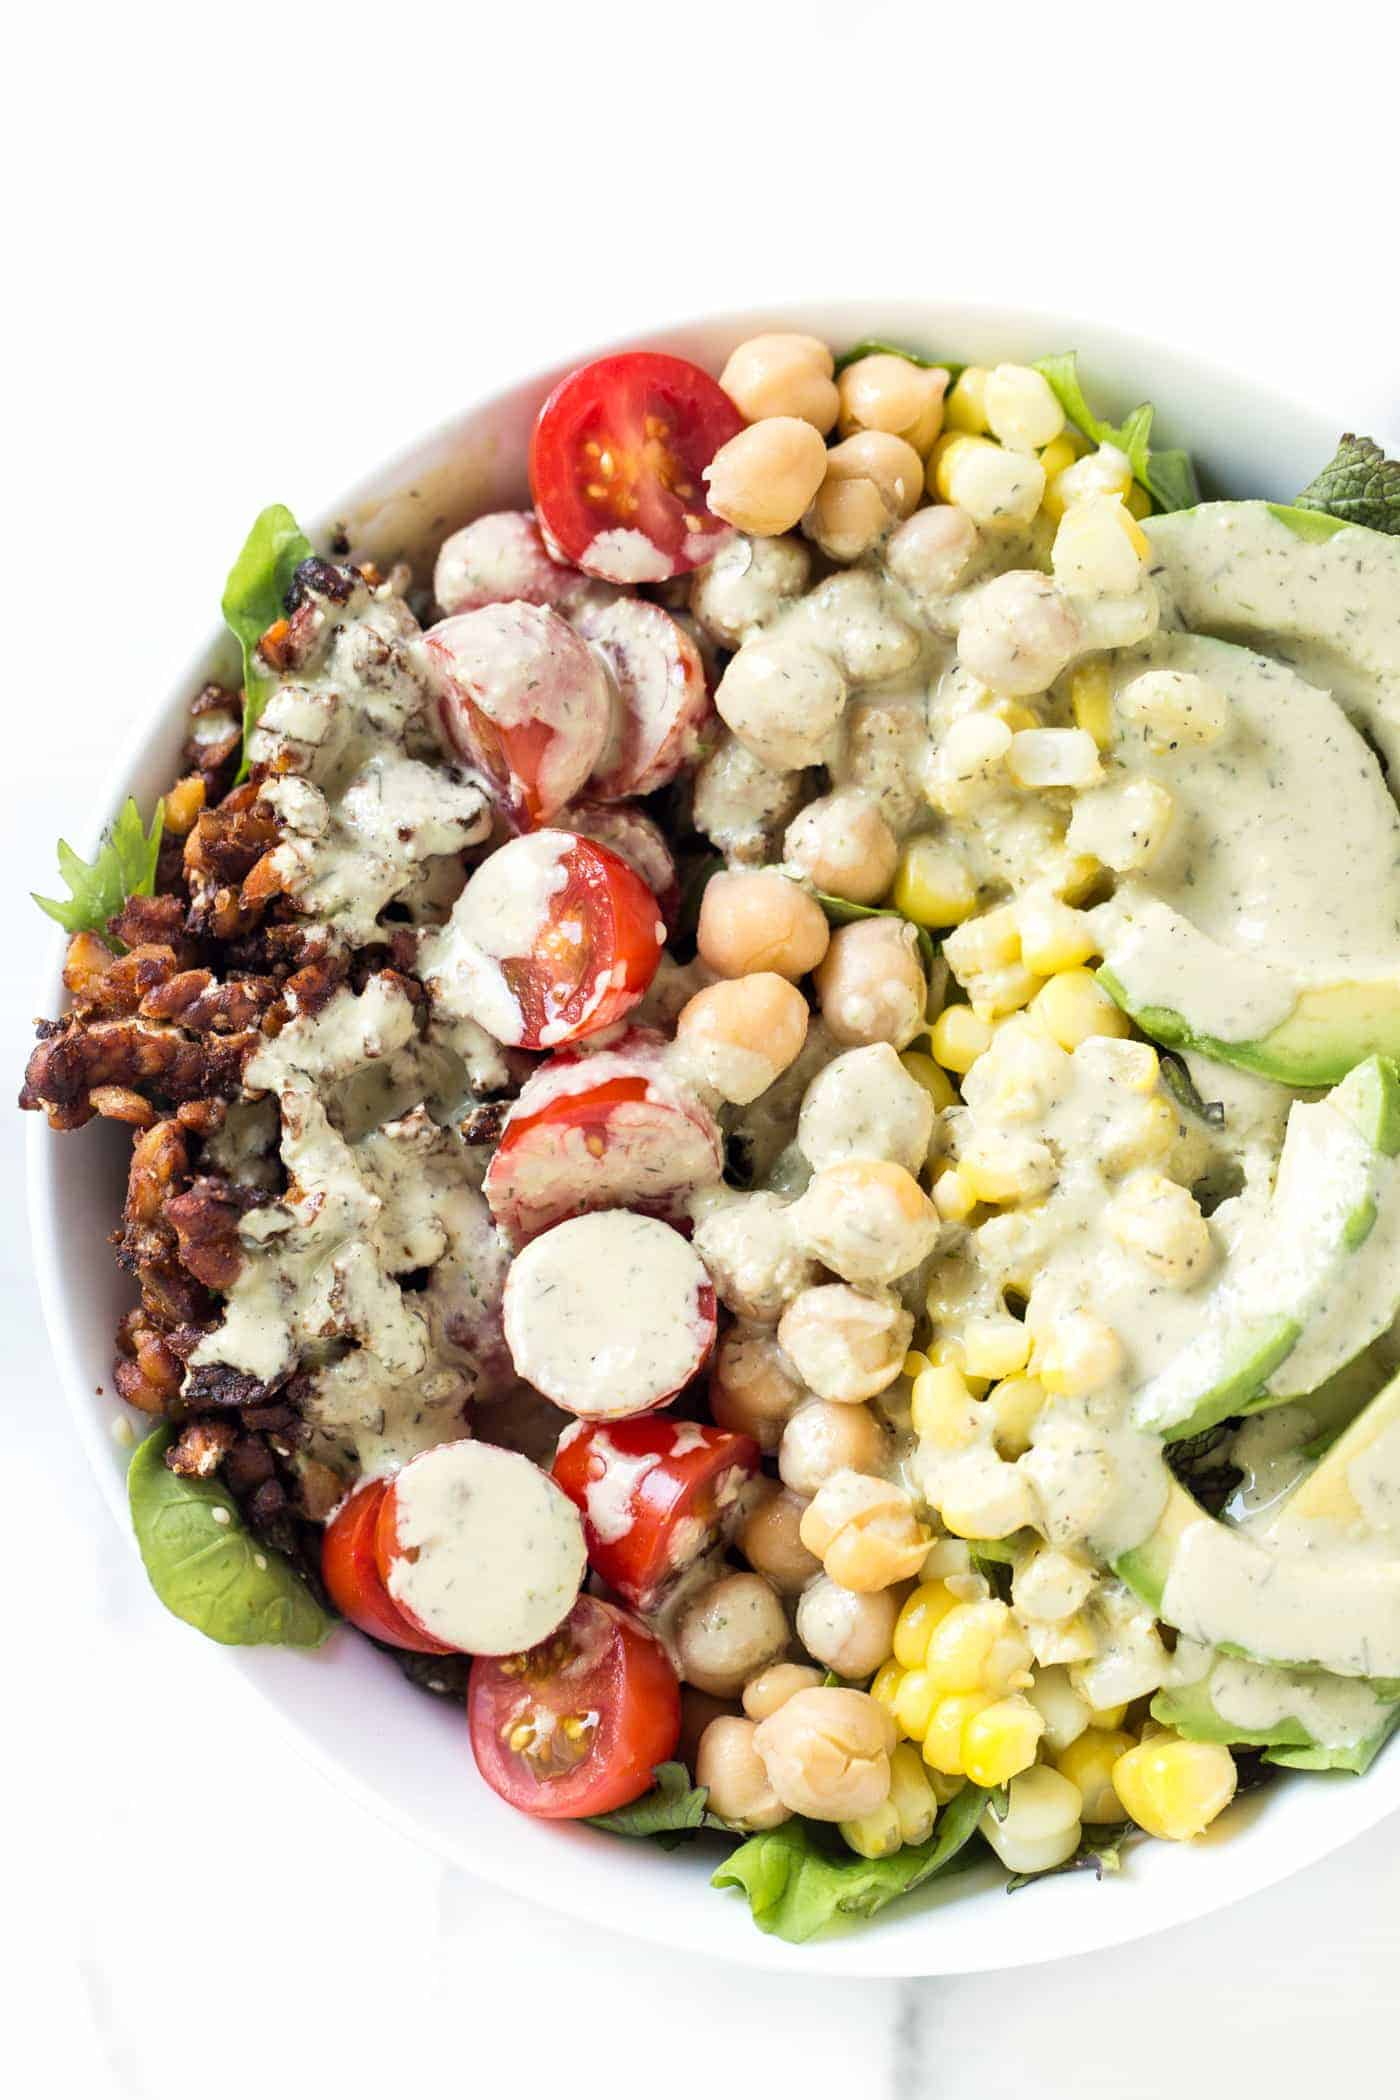 This easy VEGAN COBB SALAD replaces all the unhealthy ingredients with plant-based goodies! Including: tempeh bacon, chickpeas and a vegan ranch dressing!